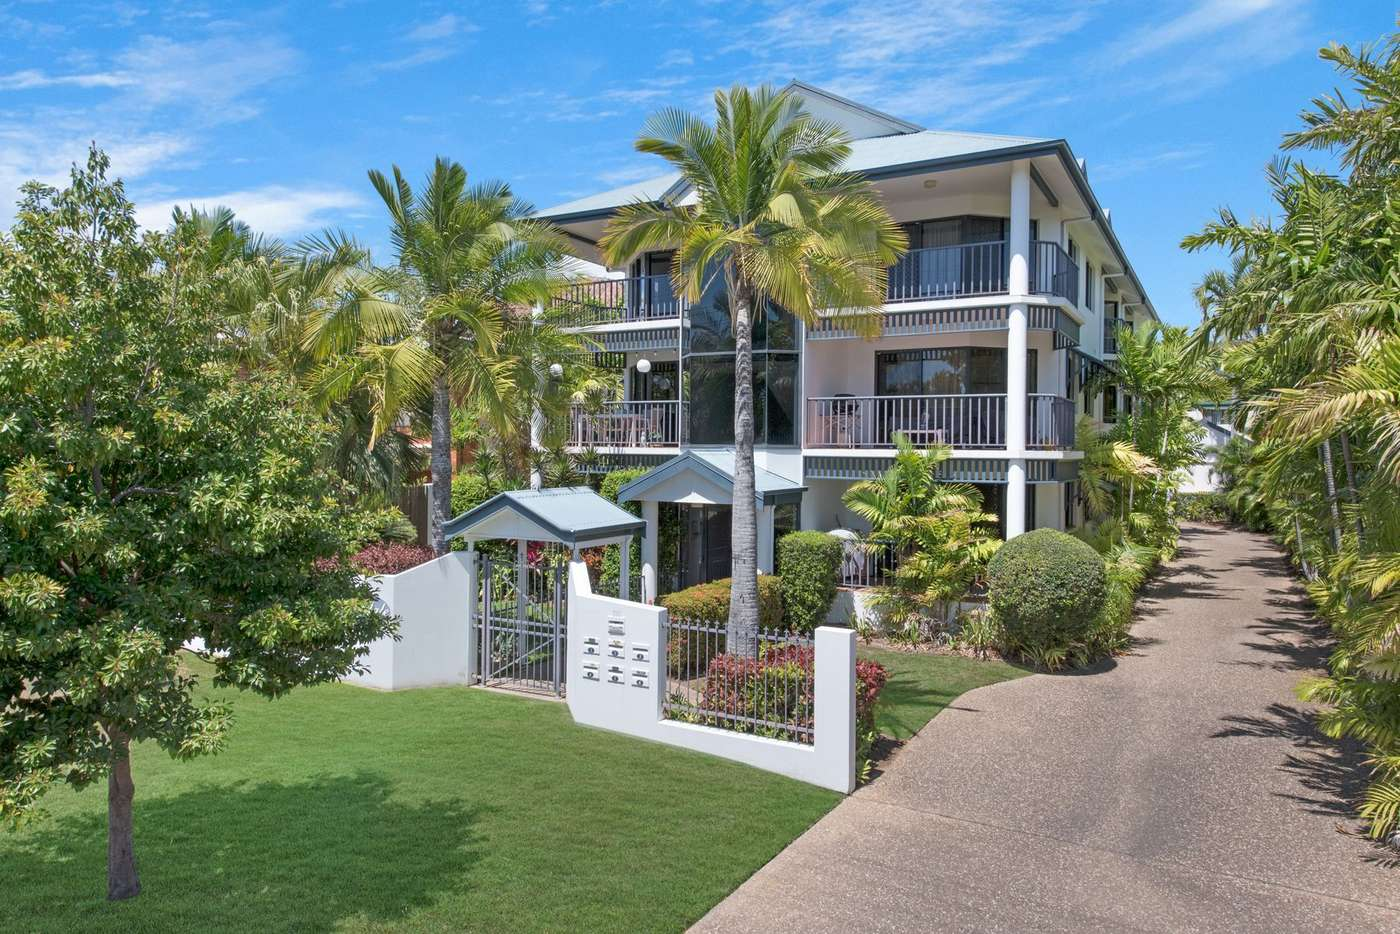 Main view of Homely apartment listing, 5/106 Eyre Street, North Ward QLD 4810